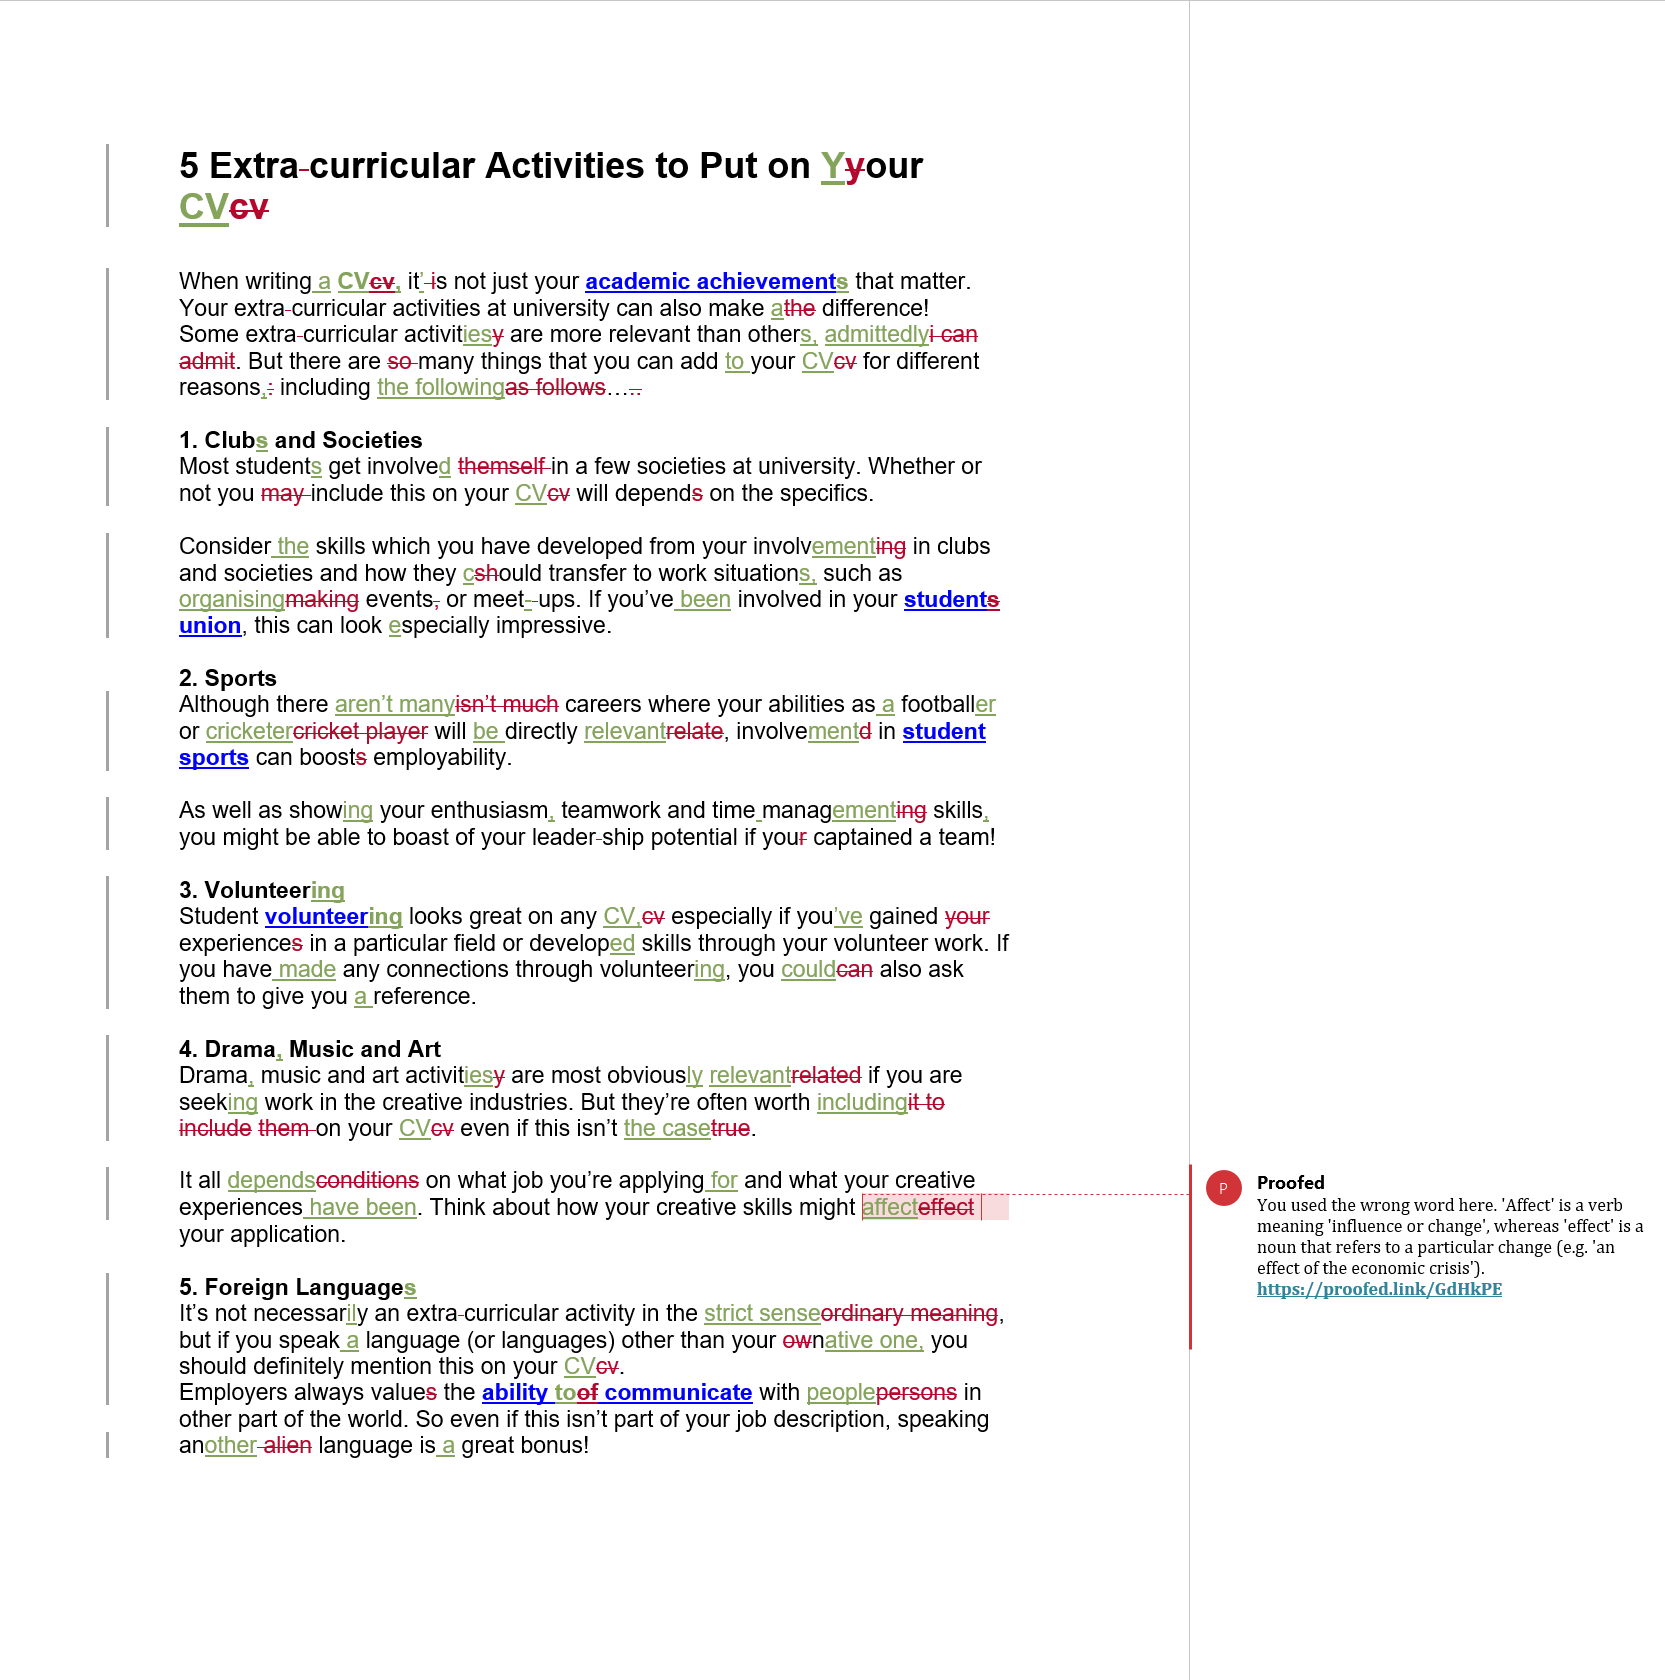 Blog Proofreading Example (After Editing)